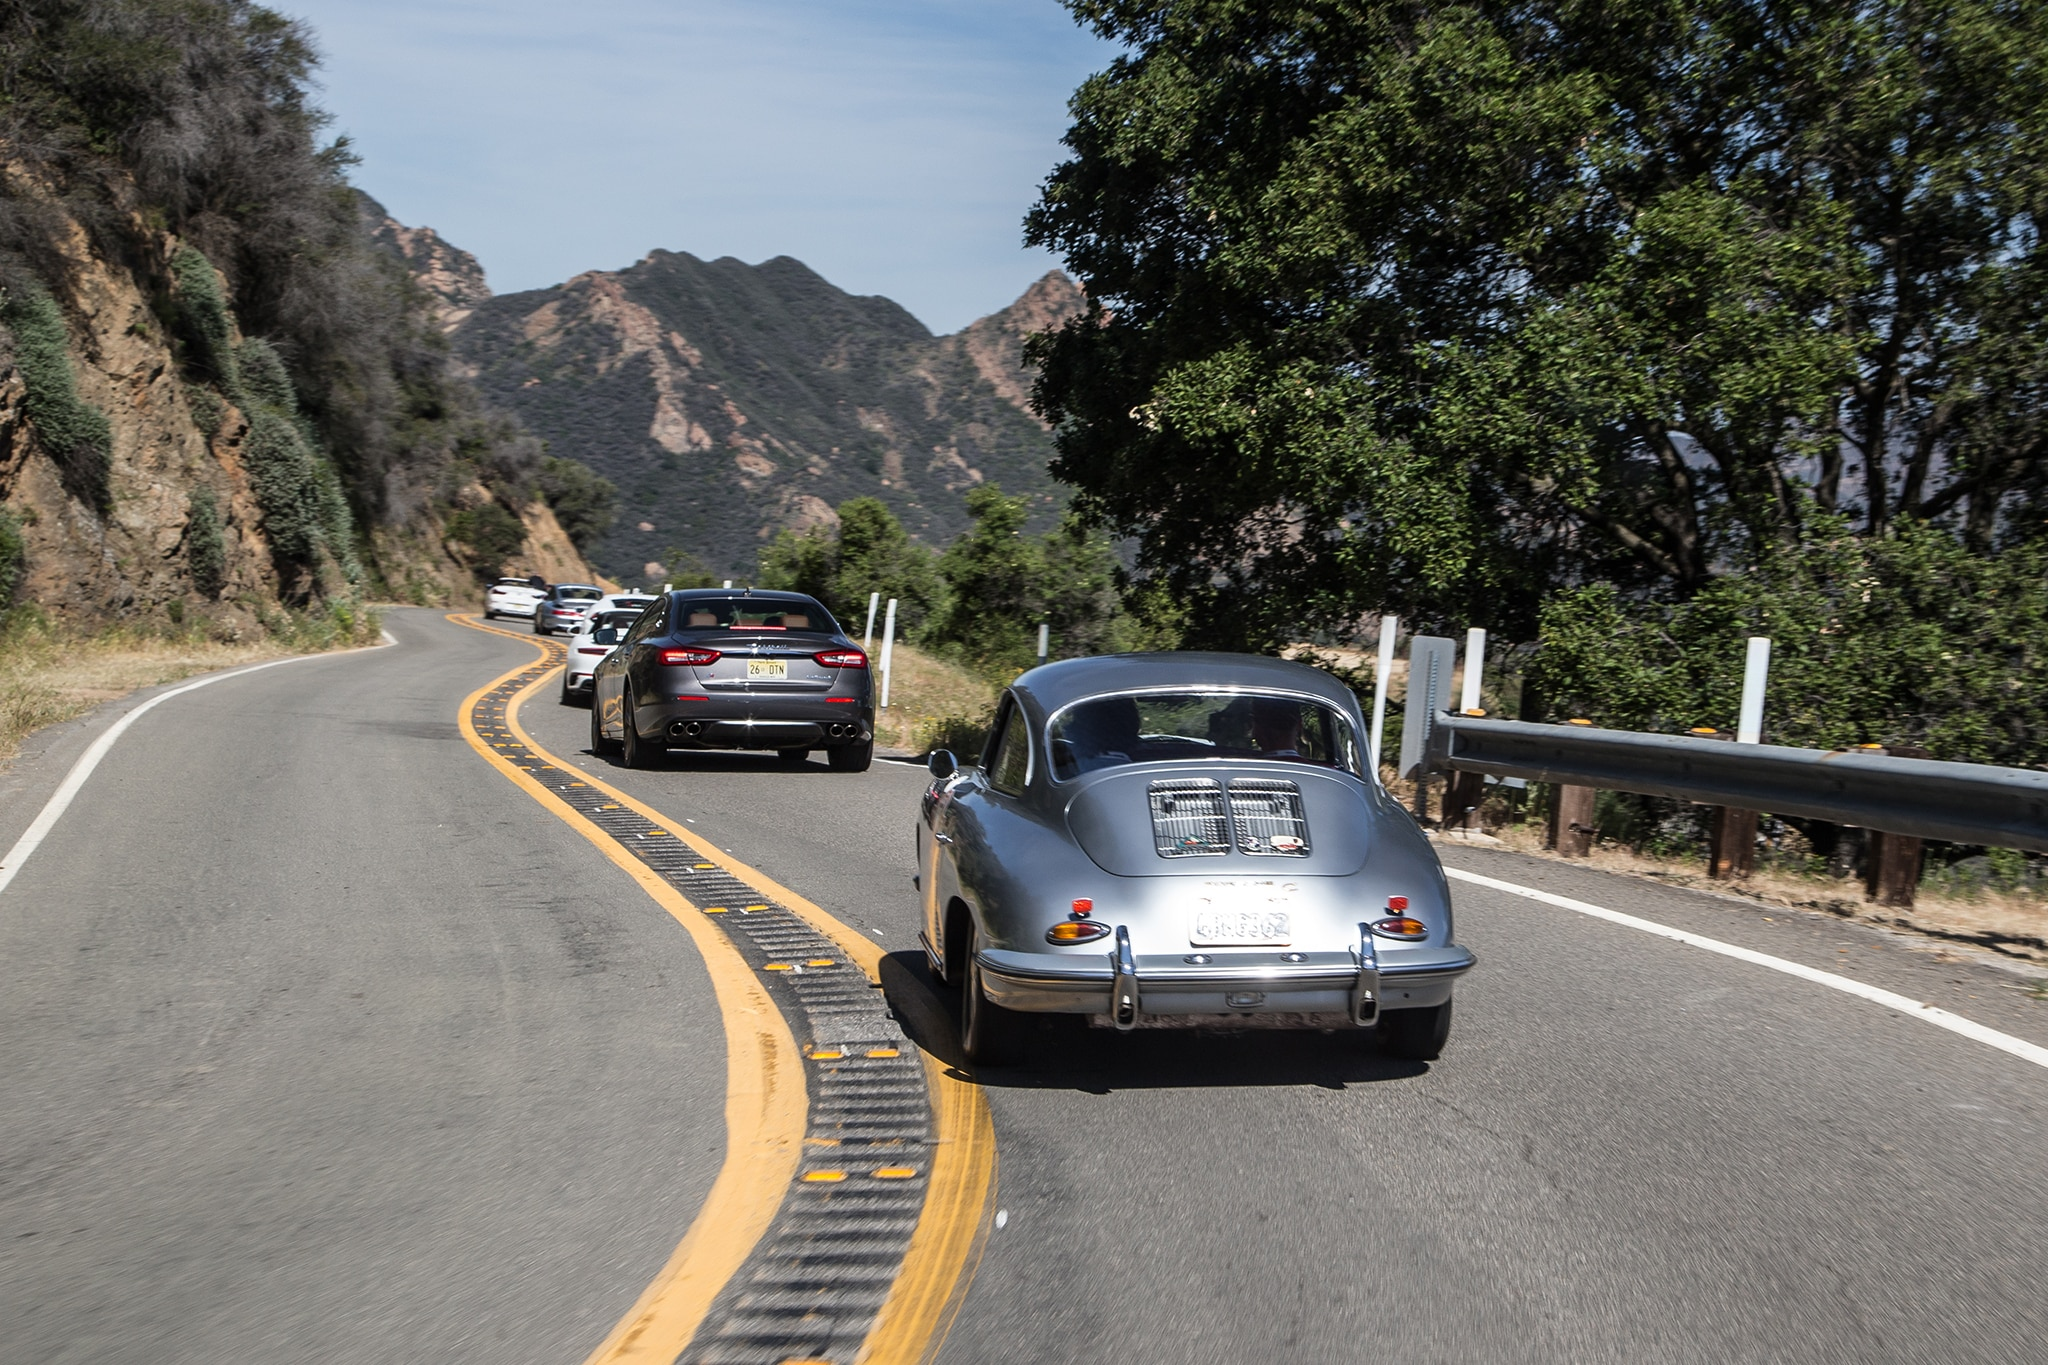 1964 Porsche 356 C Rear View In Motion 04